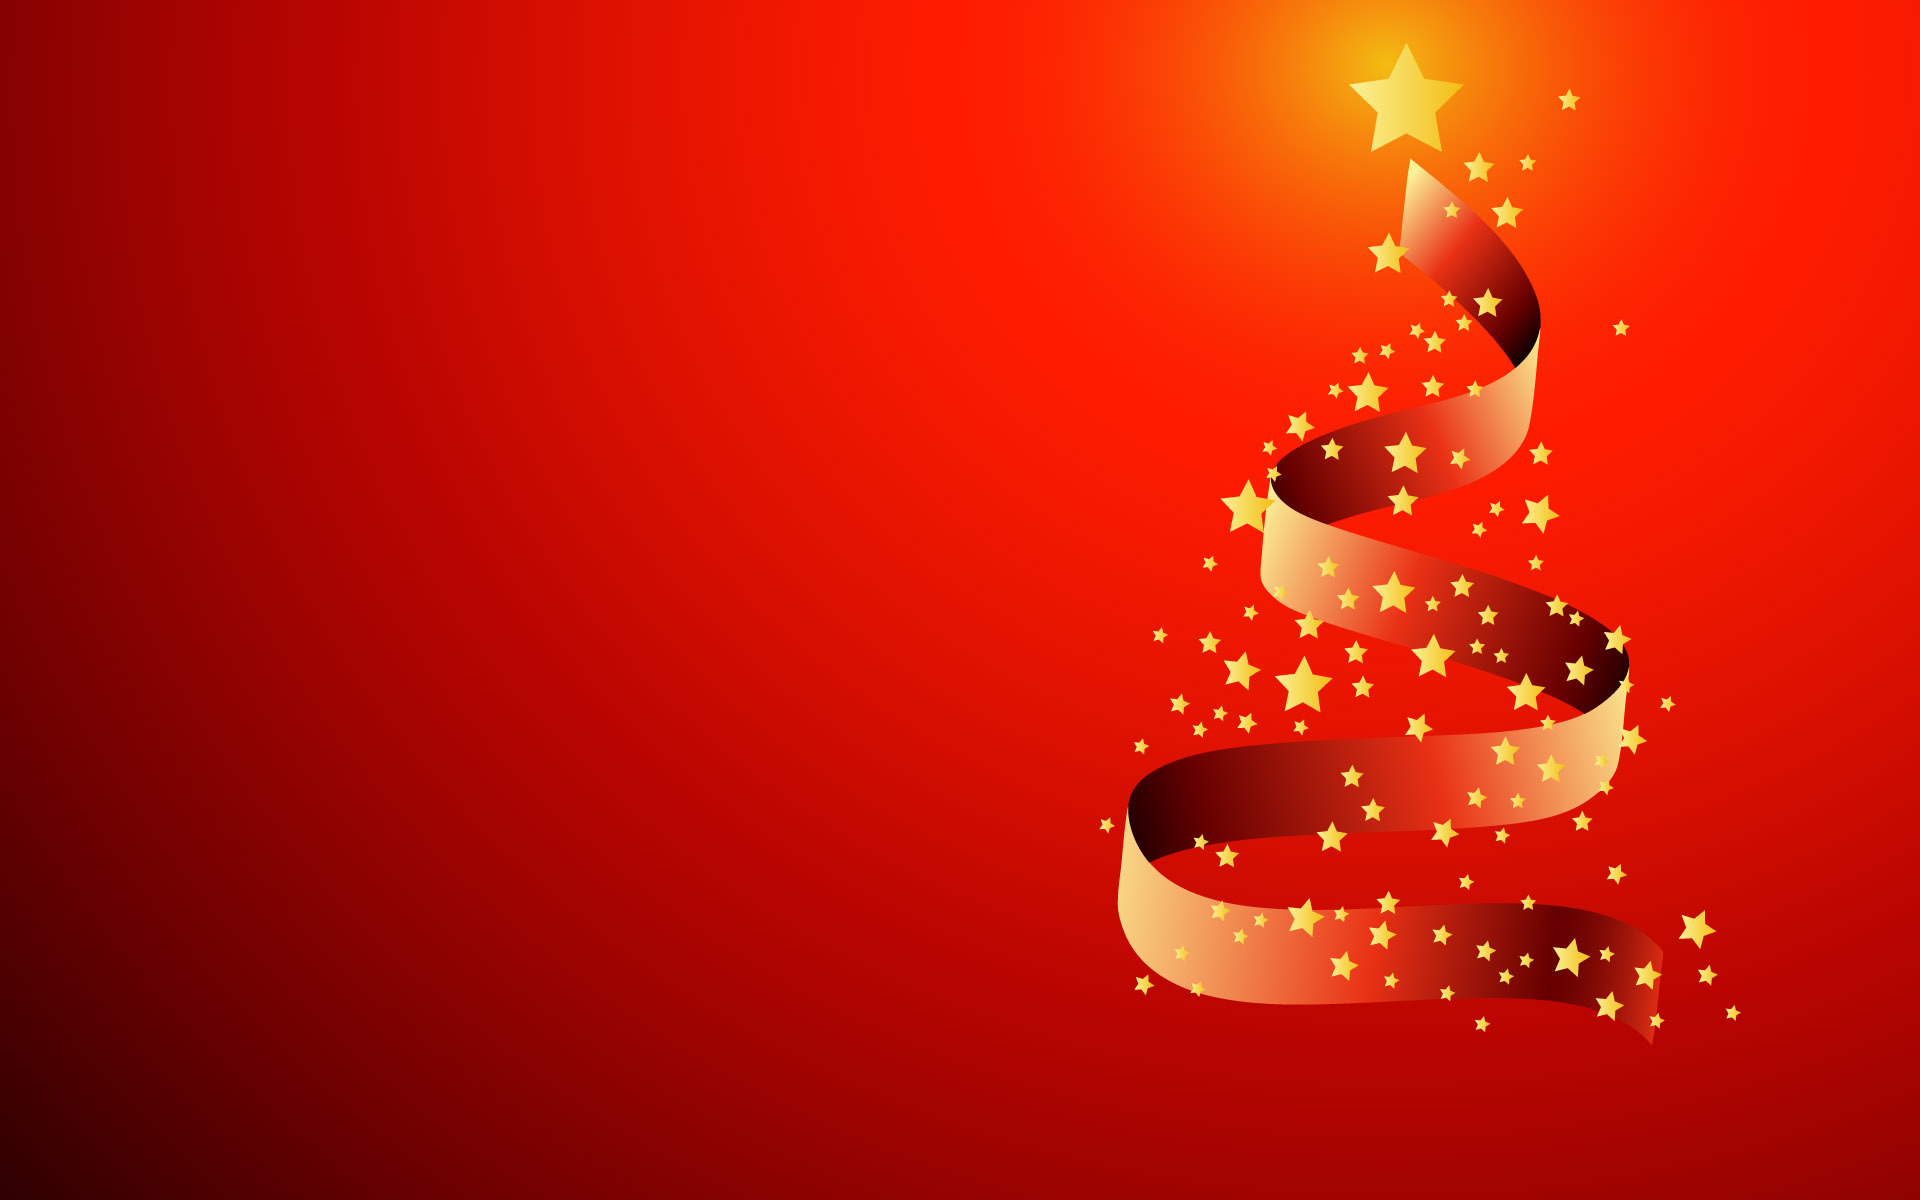 Christmas_wallpapers_Ribbon_as_a_Christmas_tree_on_red_background_on_Christmas_052652_